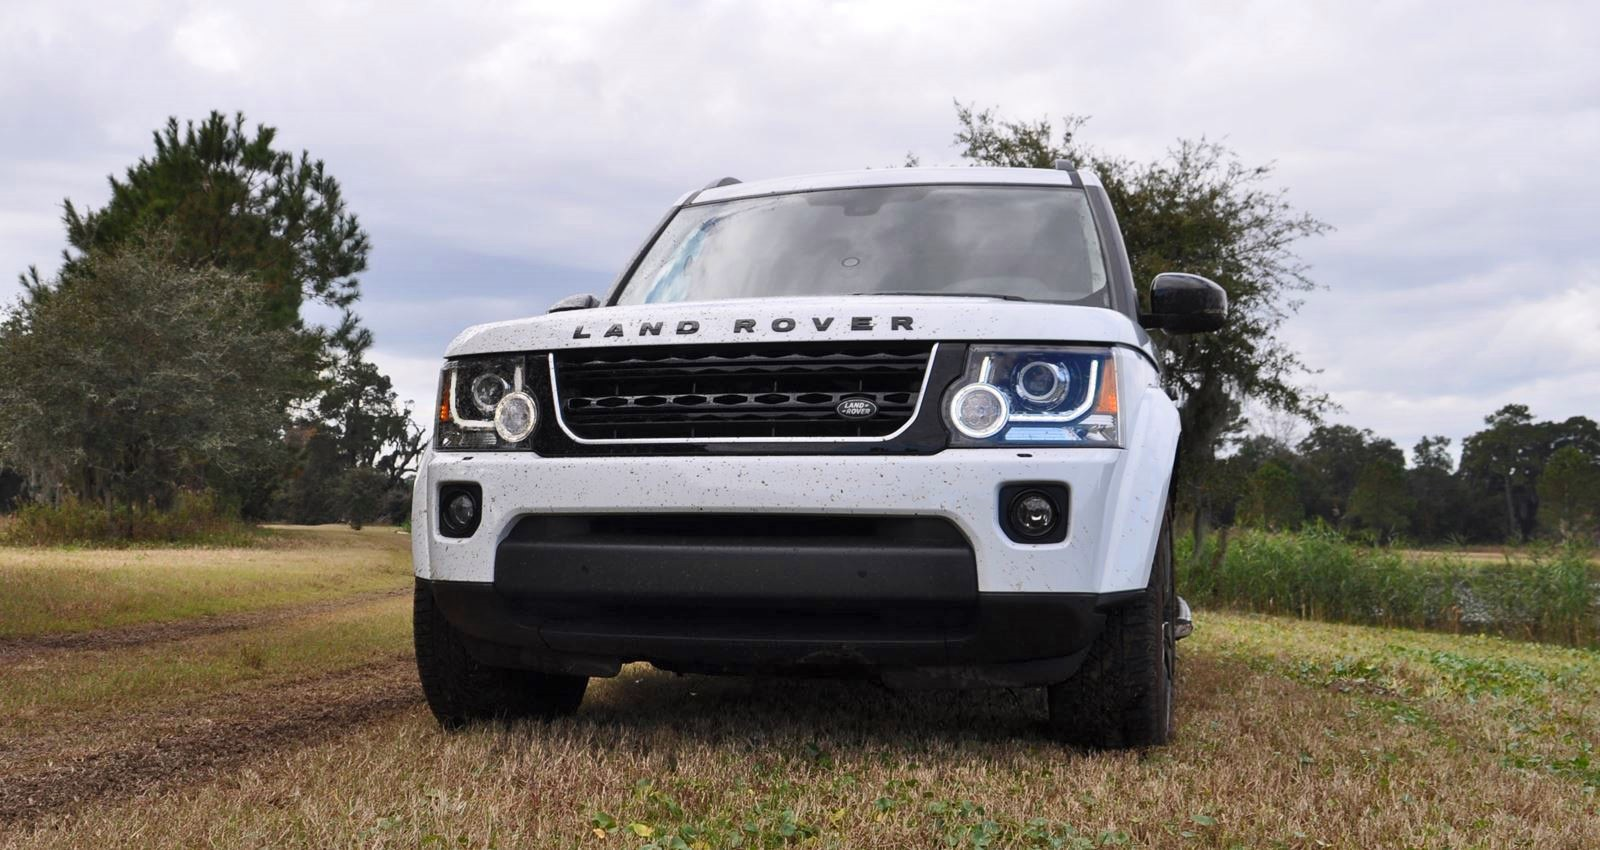 tx used rover landrover in land for on hse houston sale suv